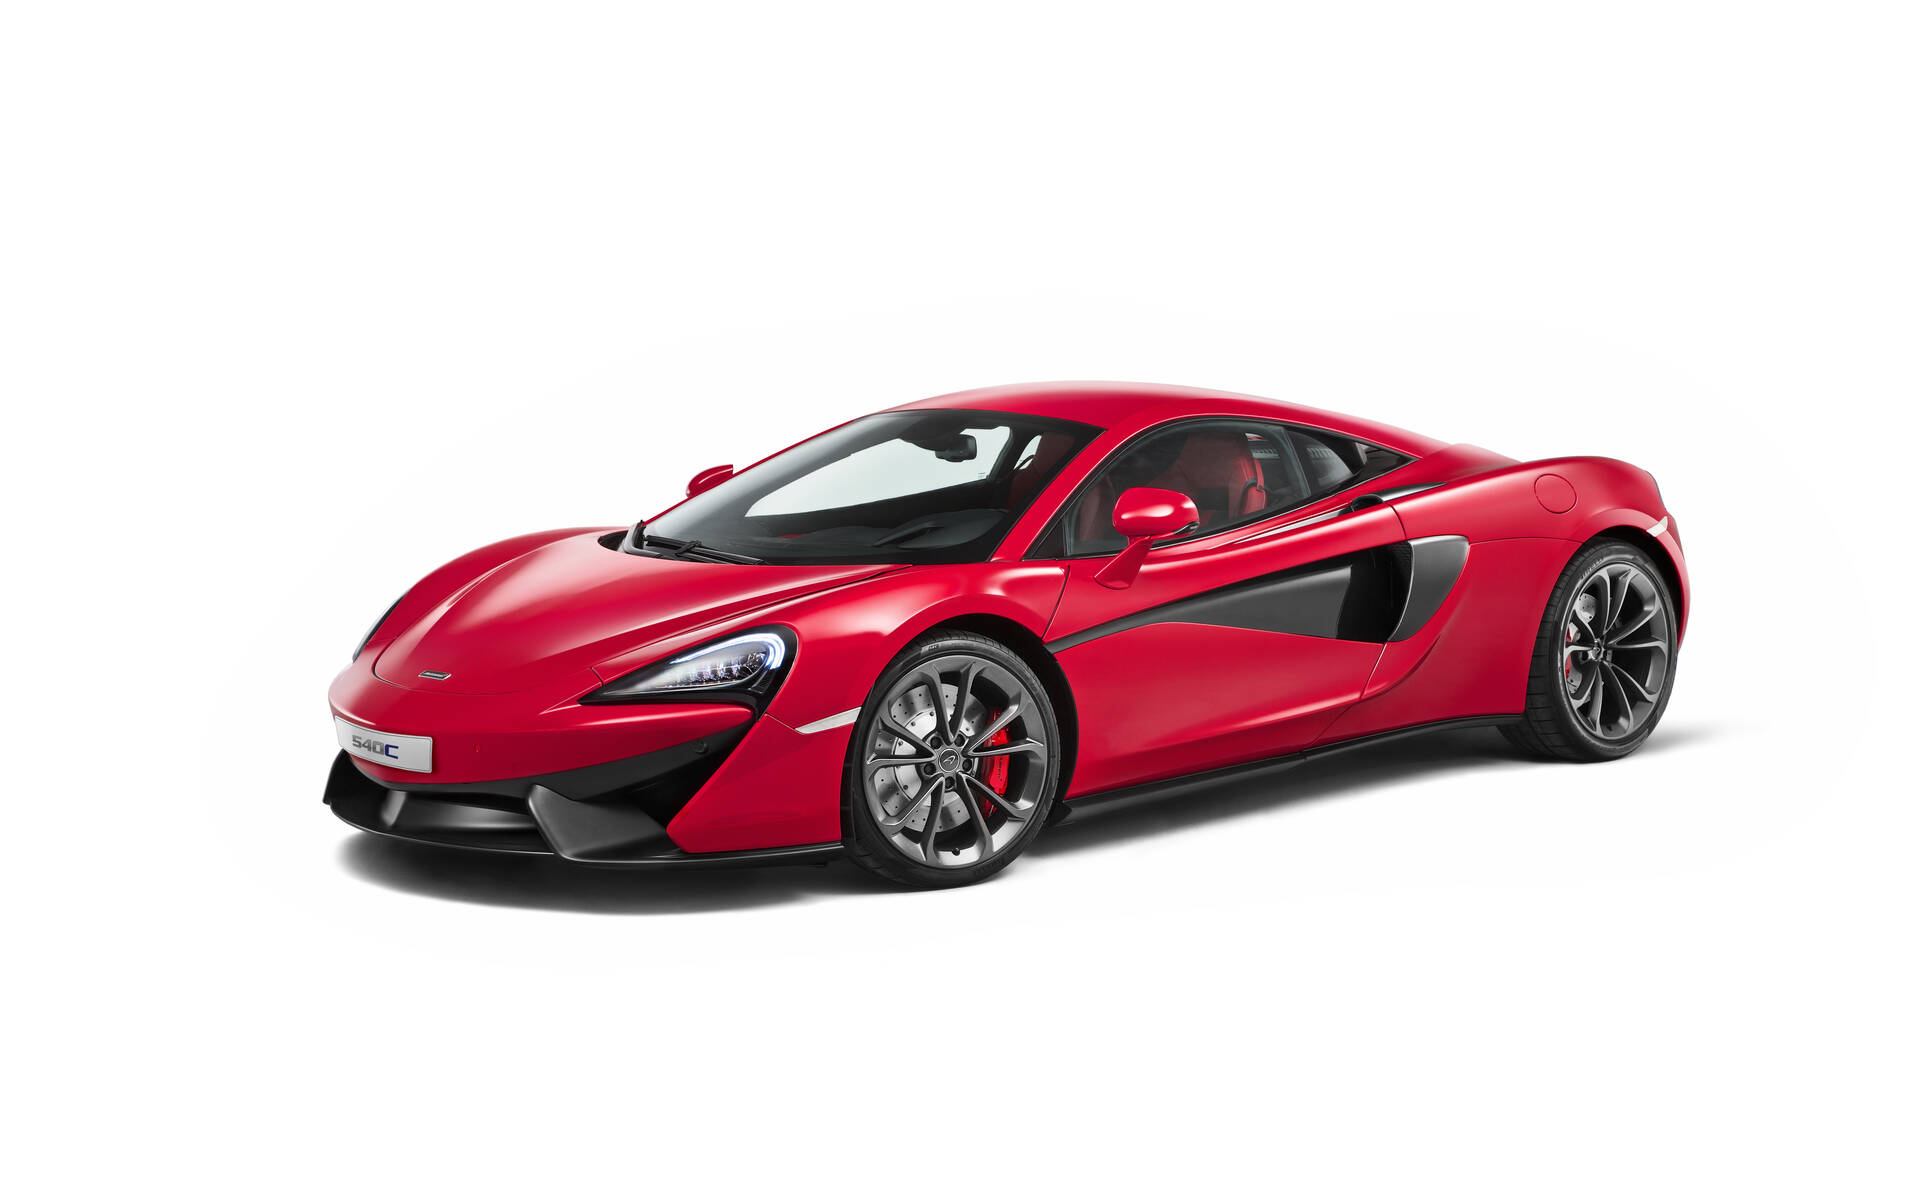 2021 Mclaren 540c News Reviews Picture Galleries And Videos The Car Guide